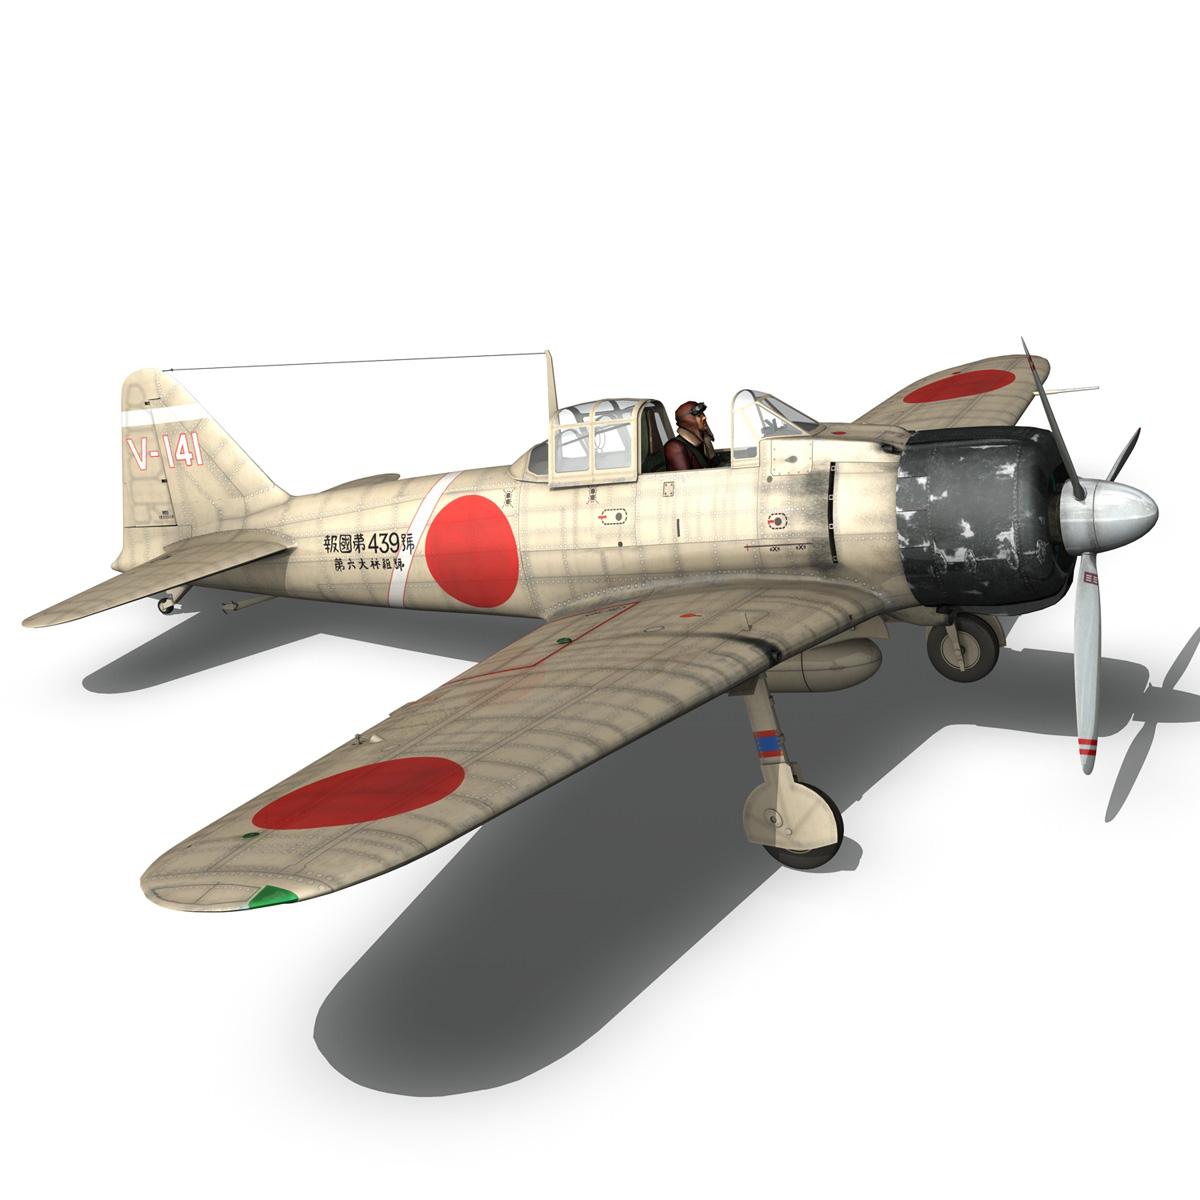 mitsubishi a6m2 zero – tainan air group 3d model fbx lwo obj 272721